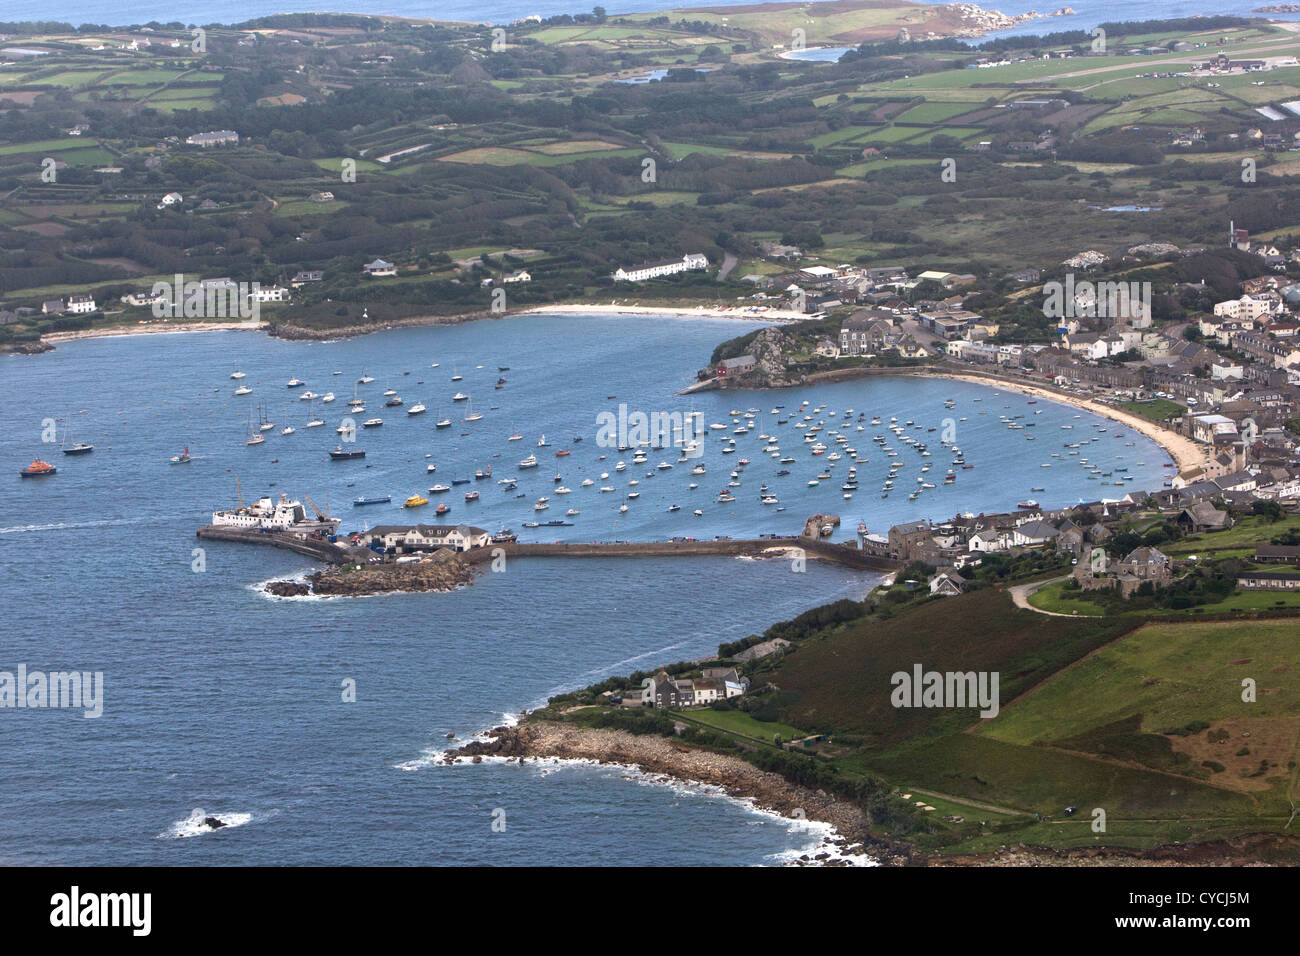 Boats in the harbour at Hugh Town, St Mary's, Isles of Scilly - Stock Image